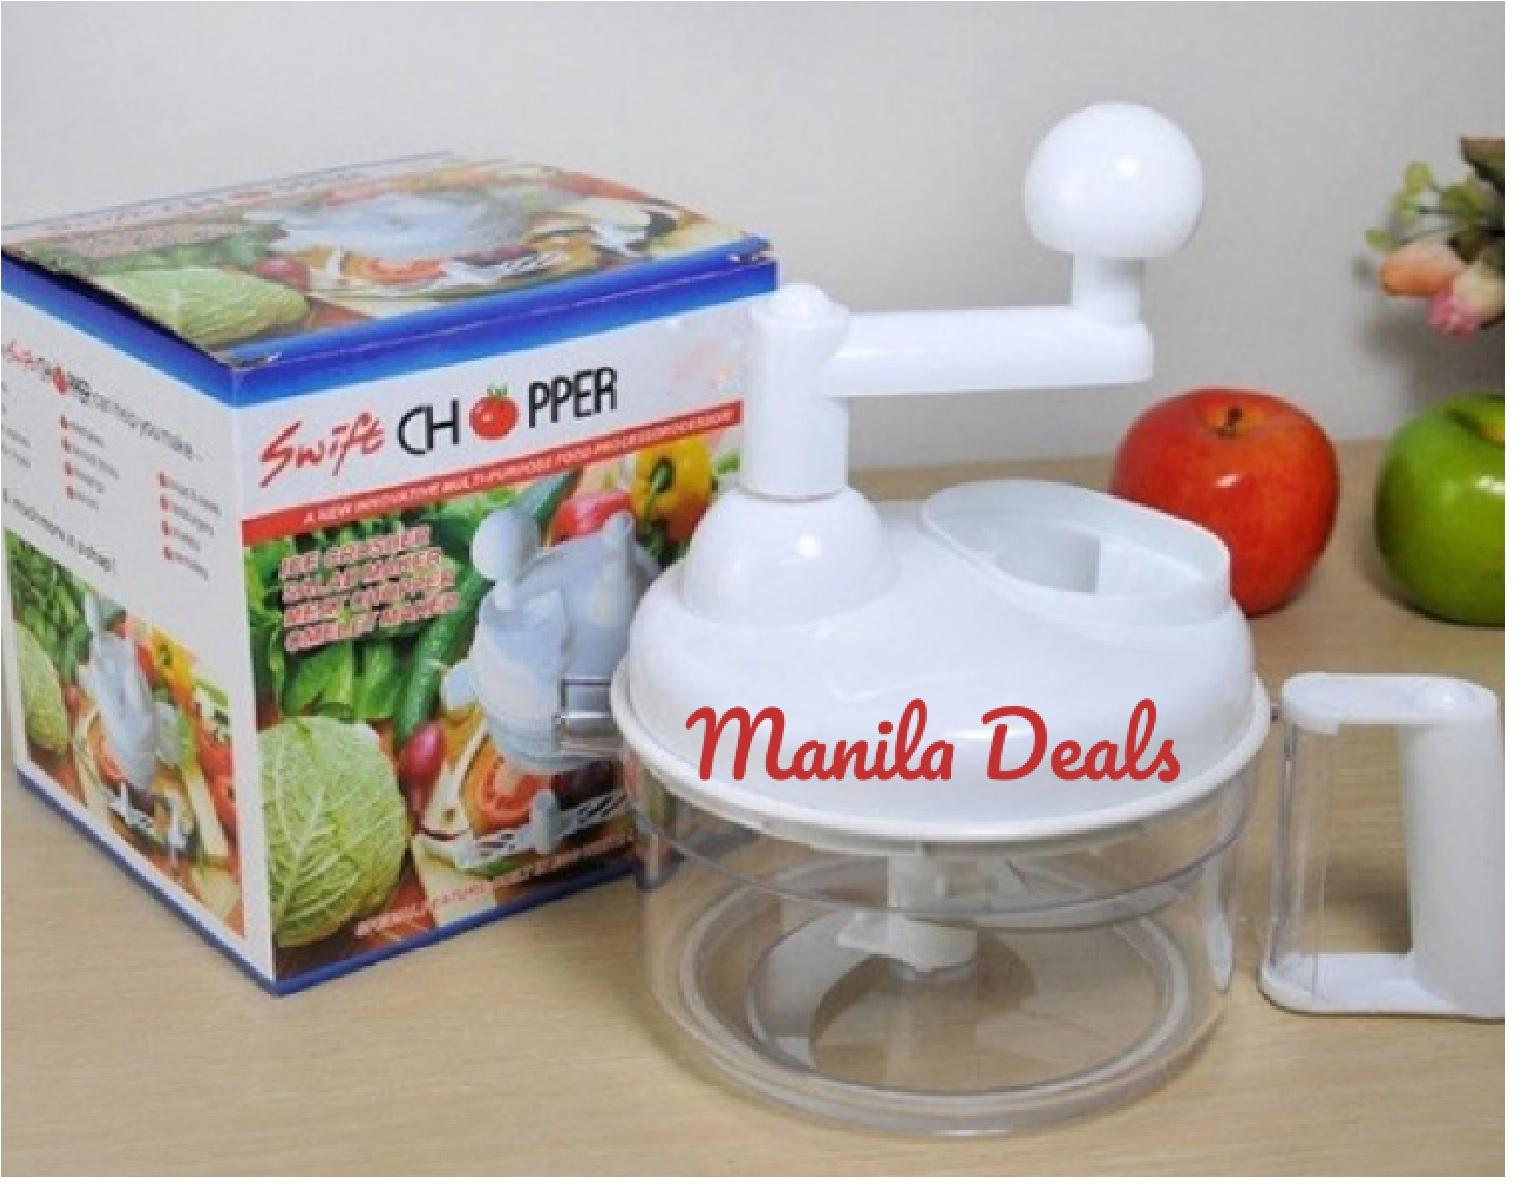 Manila Deals Swift Chopper ICE CRUSHER SALAD MAKER MEAT CHOPPER OMELET MAKER Salsa Master Salsa Maker